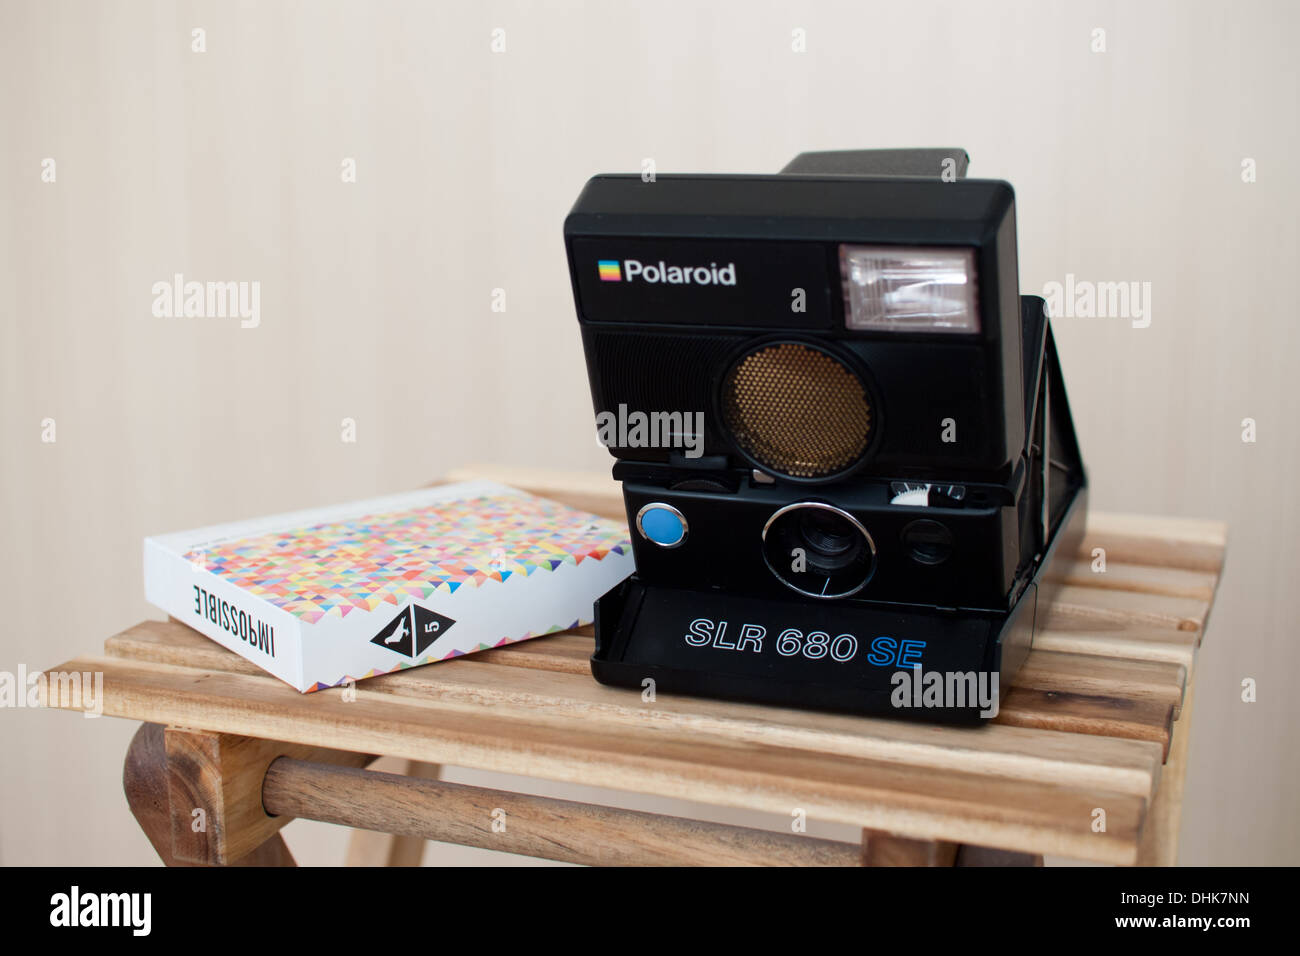 A Polaroid SLR 680 SE (Special Edition) camera and Impossible x Pigeonhole PX 680 Color Protection instant film. - Stock Image